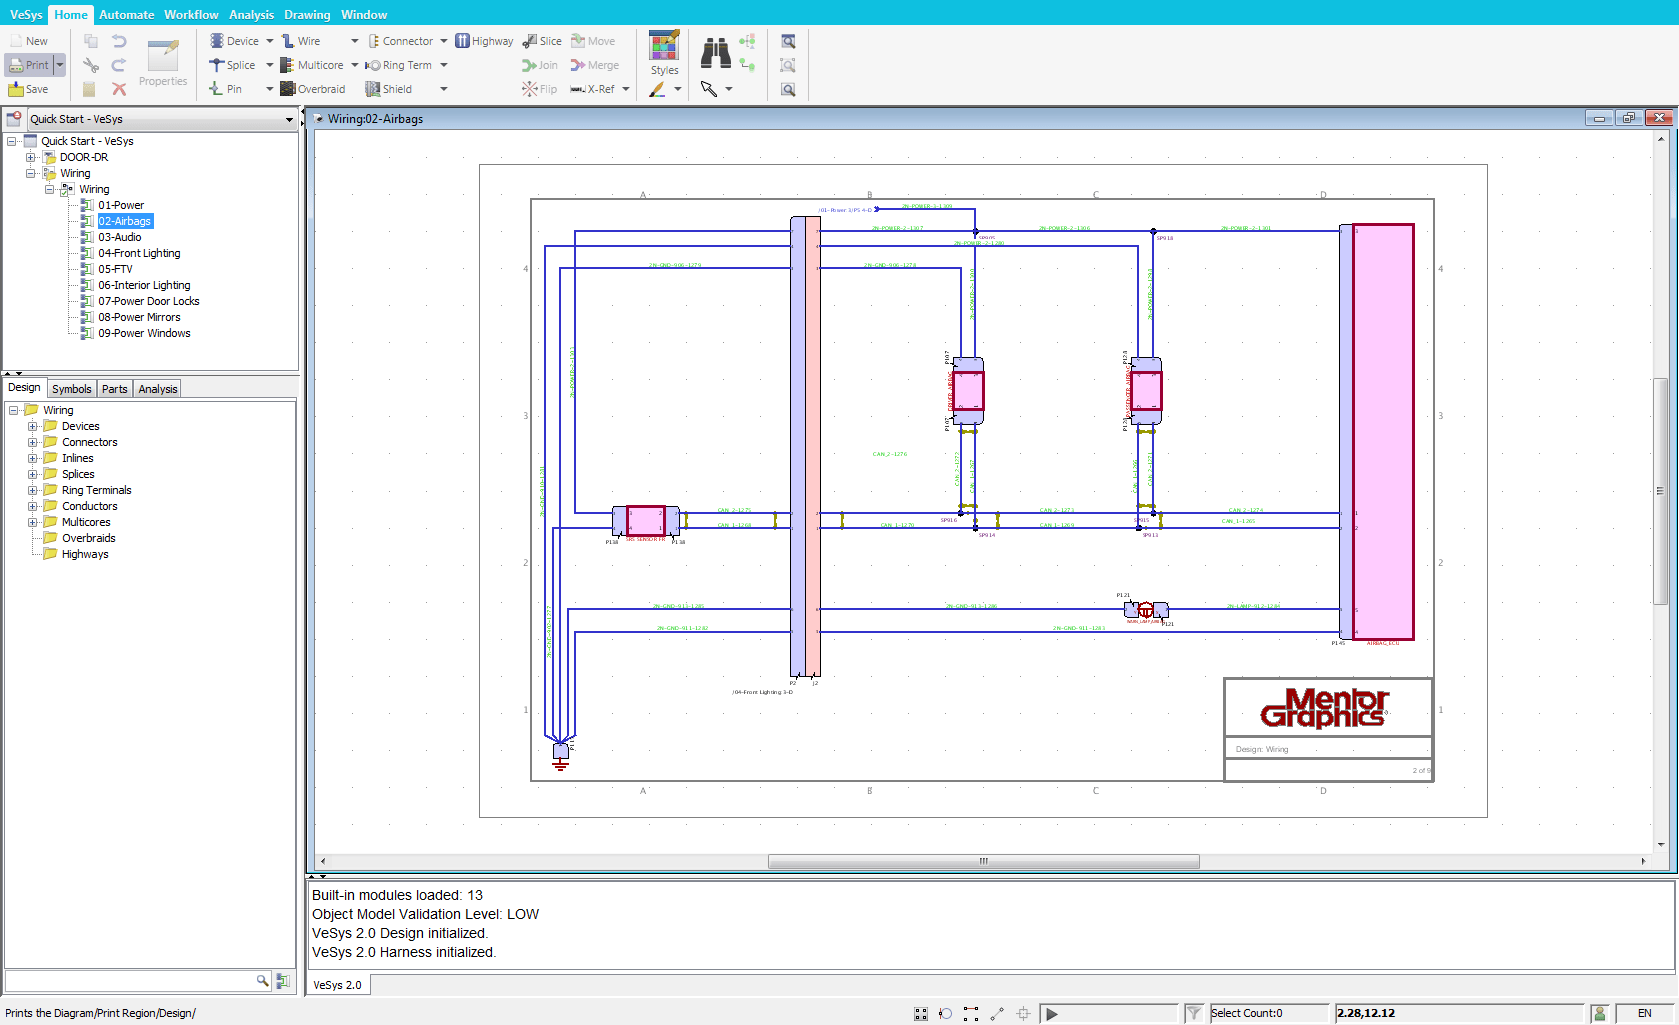 hight resolution of vesys design mentor graphics overload electrical symbol for drawings electrical diagram symbol splice